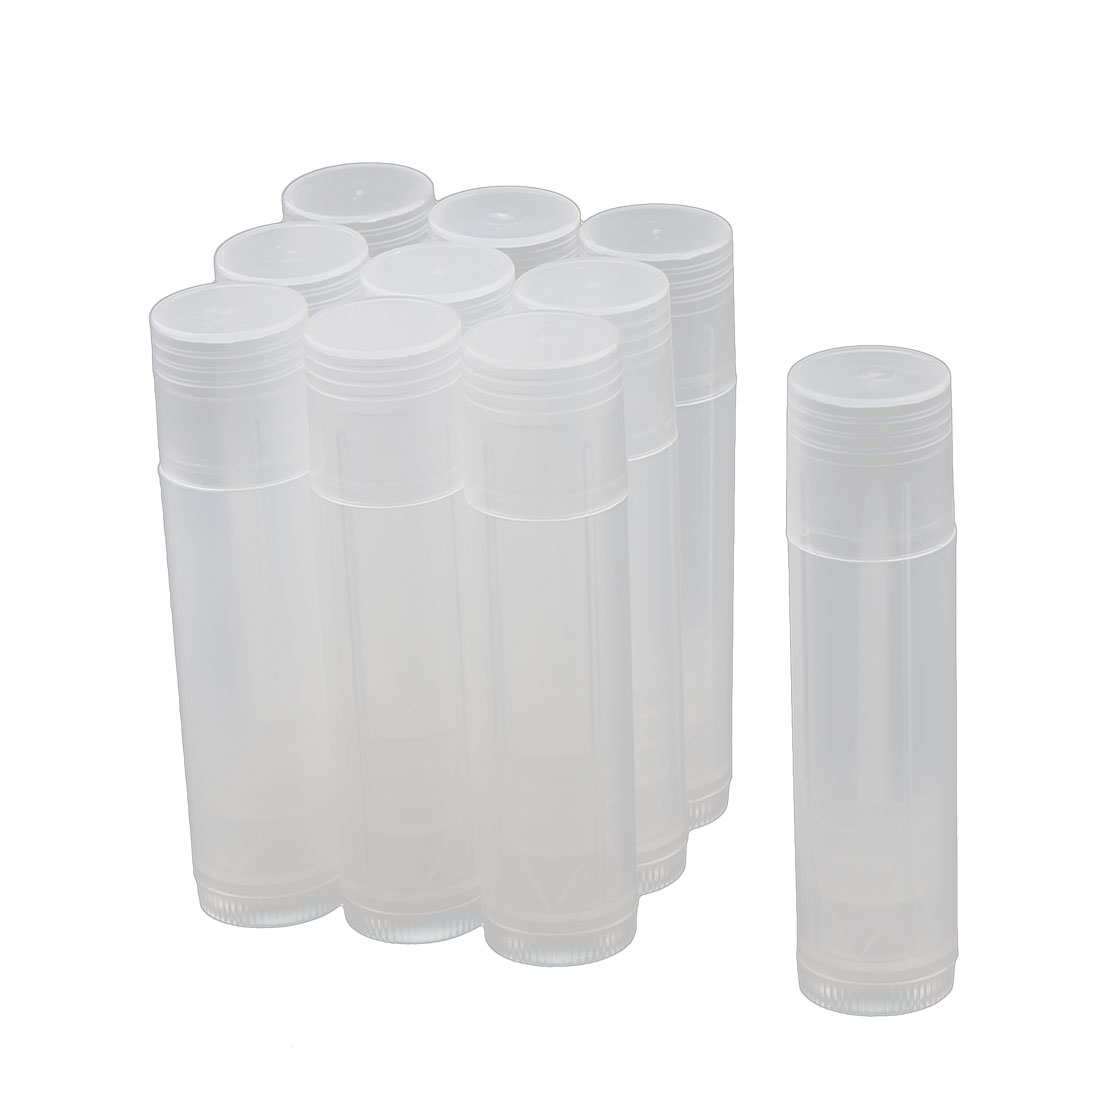 Women Plastic Empty DIY Lip Balm Tube Lipstick Chapstick Container Cosmetic Holder Clear 10 Pcs